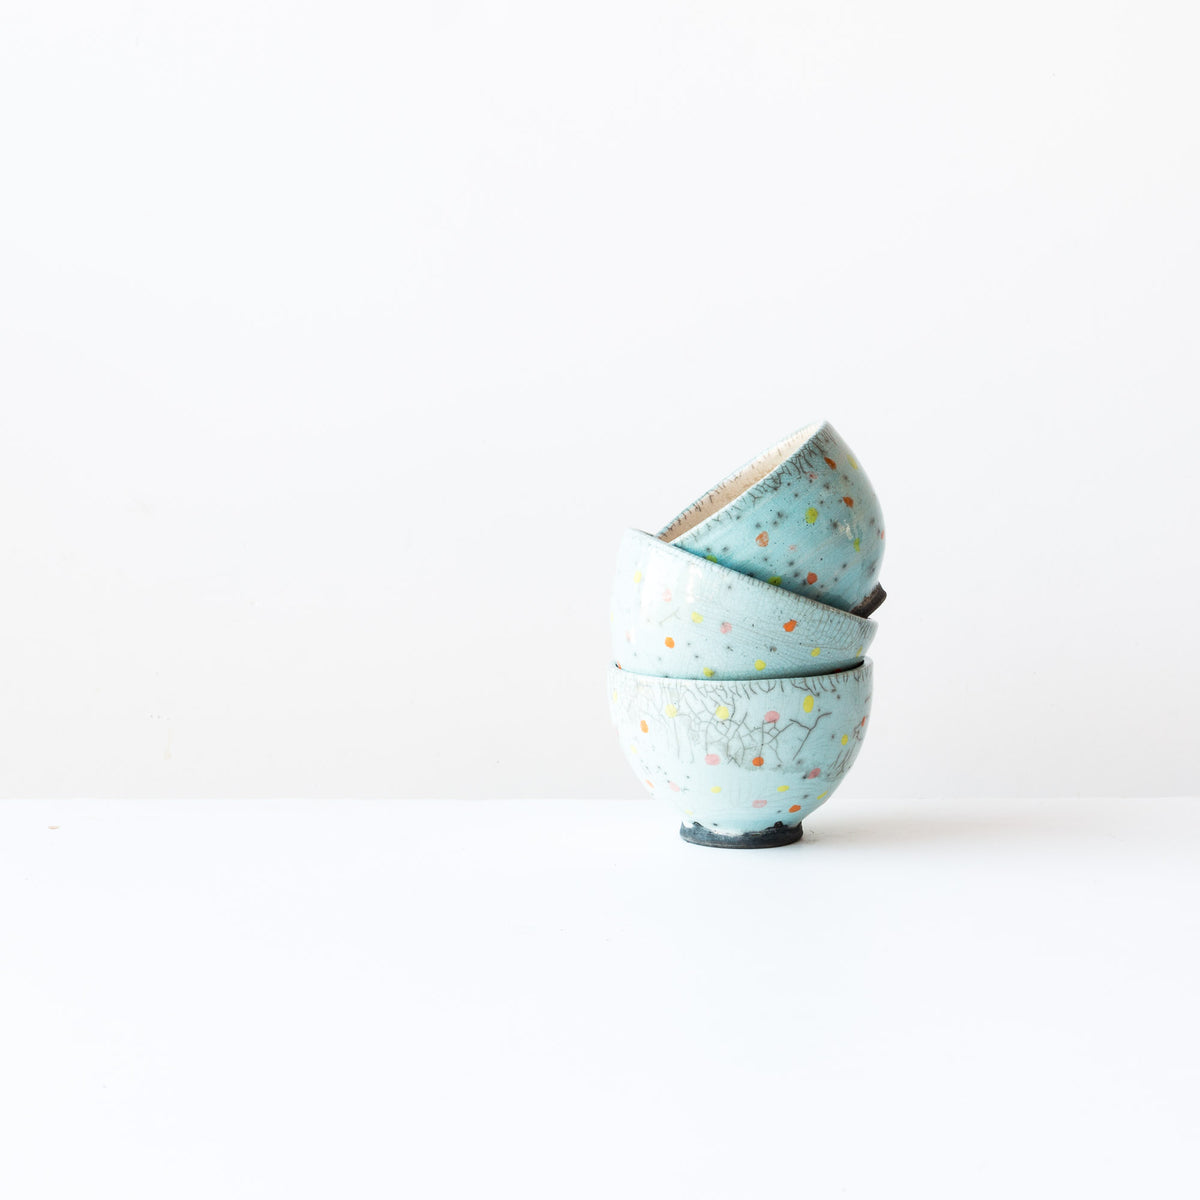 Turquoise Handmade Raku Tea Bowls with Dots - Sold by Chic & Basta